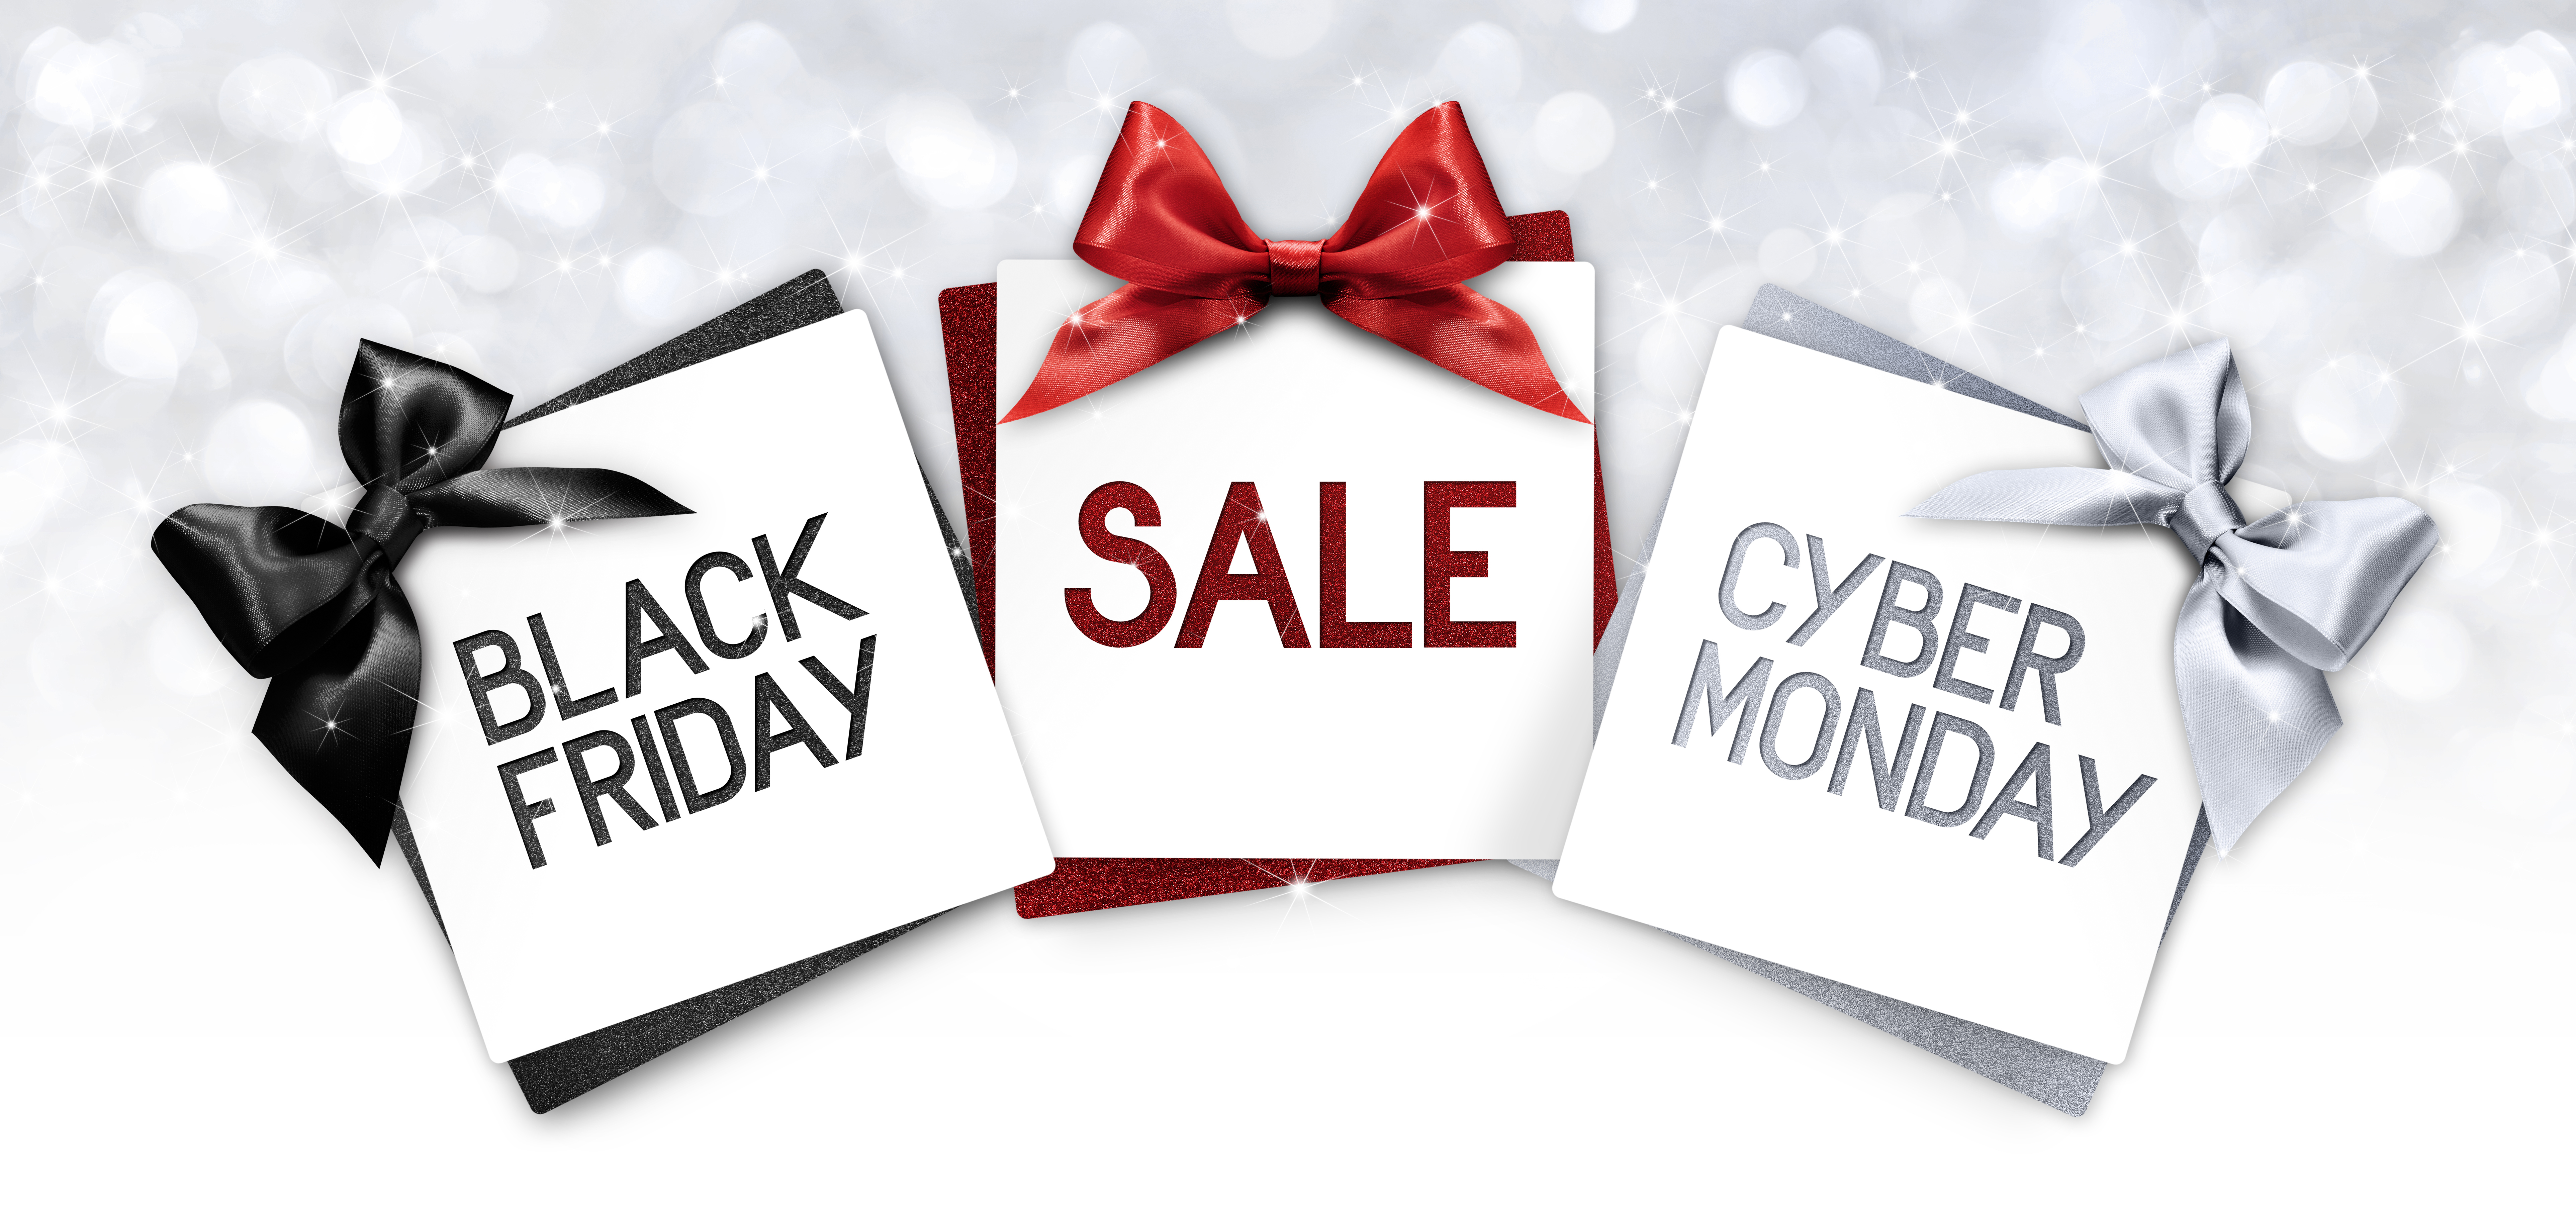 Black Friday To Cyber Monday